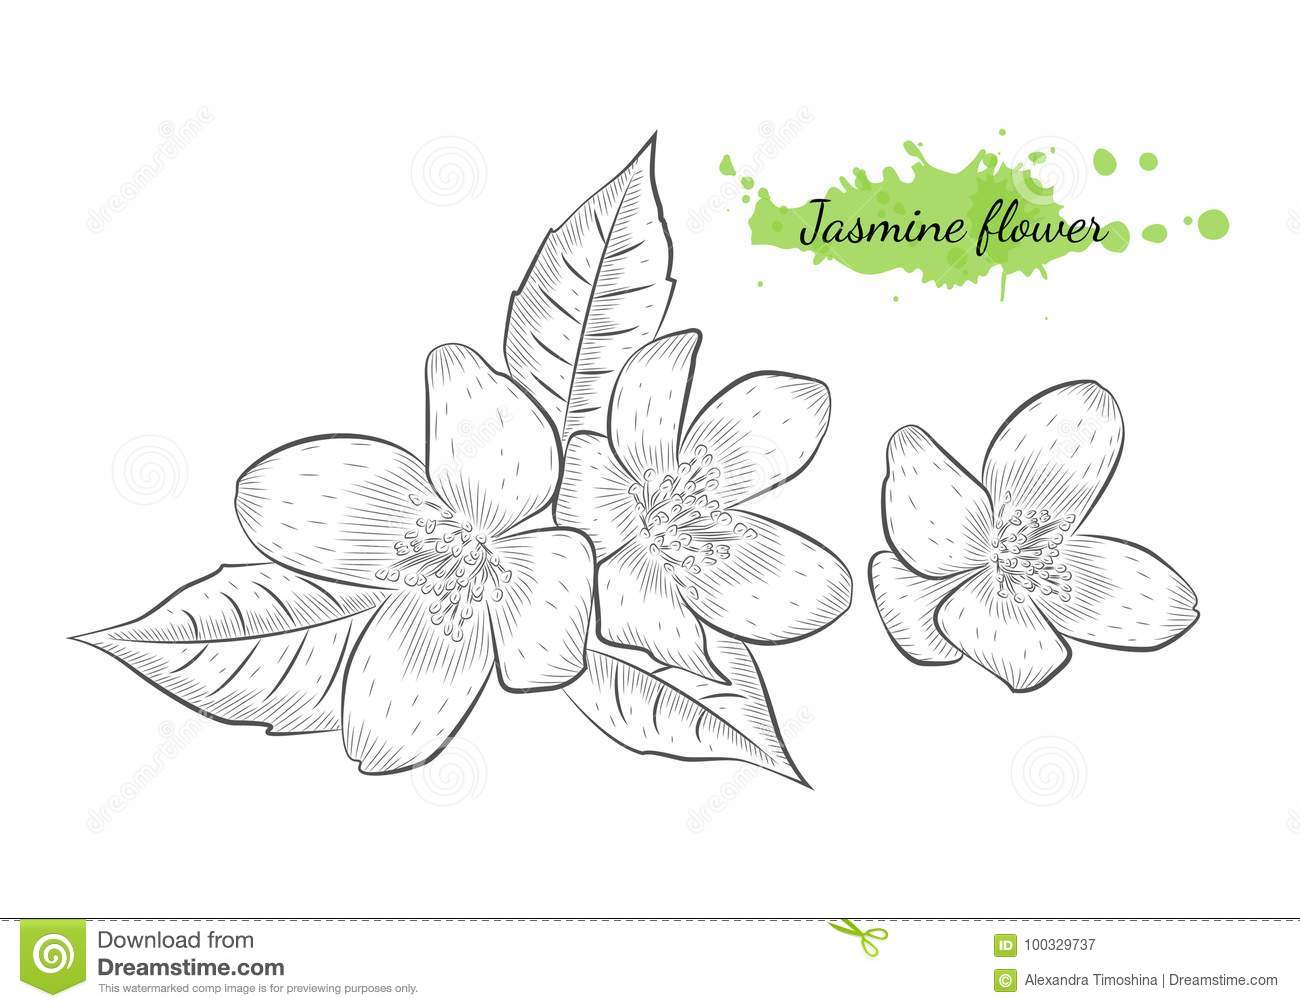 Isolated Hand Drawn Vector Illustration Of Jasmine Flower Stock